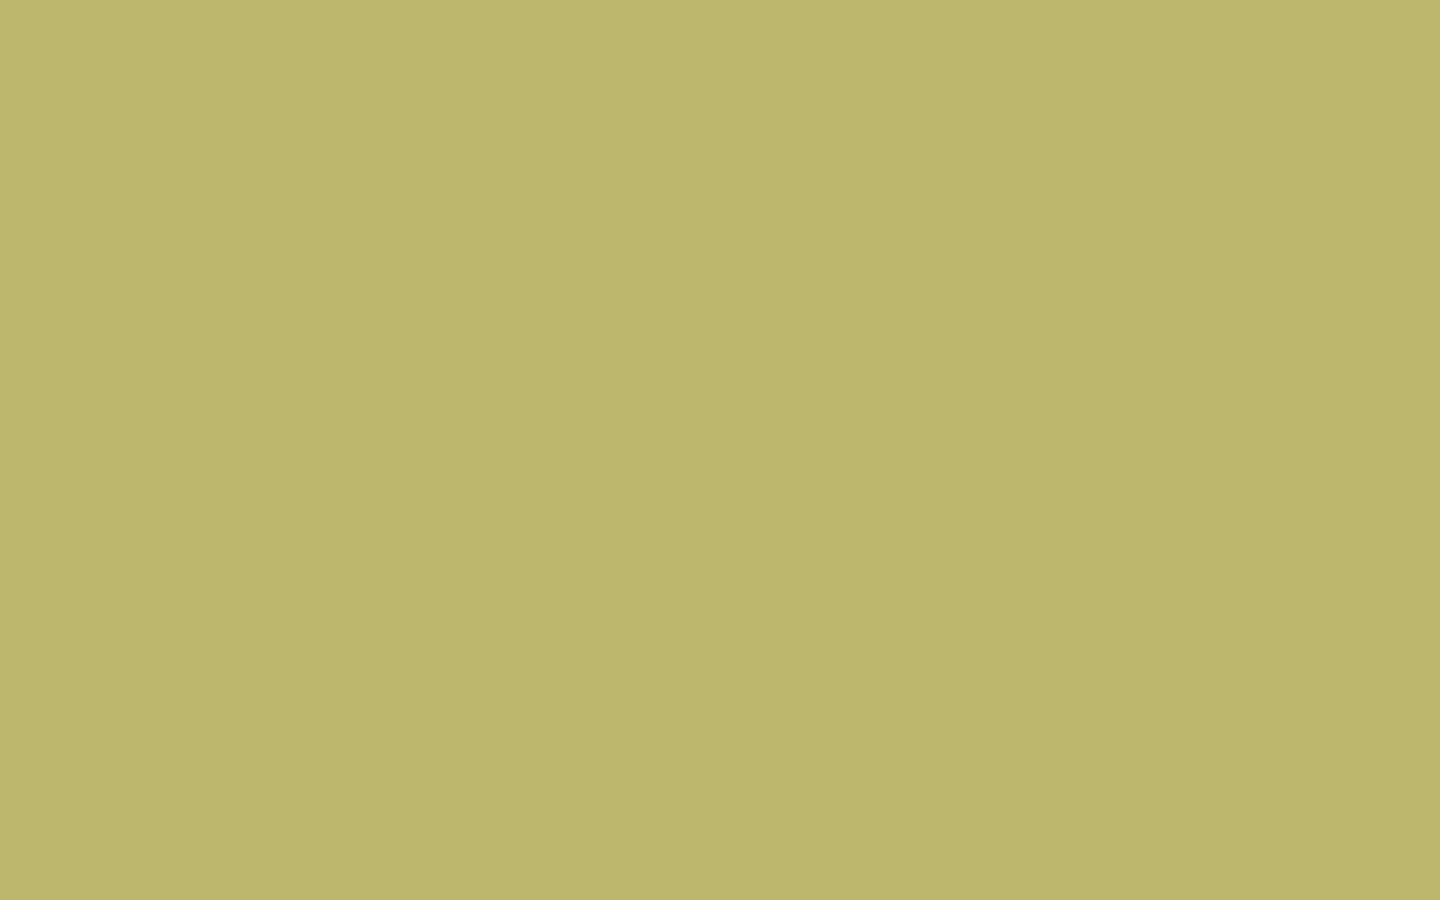 1440x900 Dark Khaki Solid Color Background